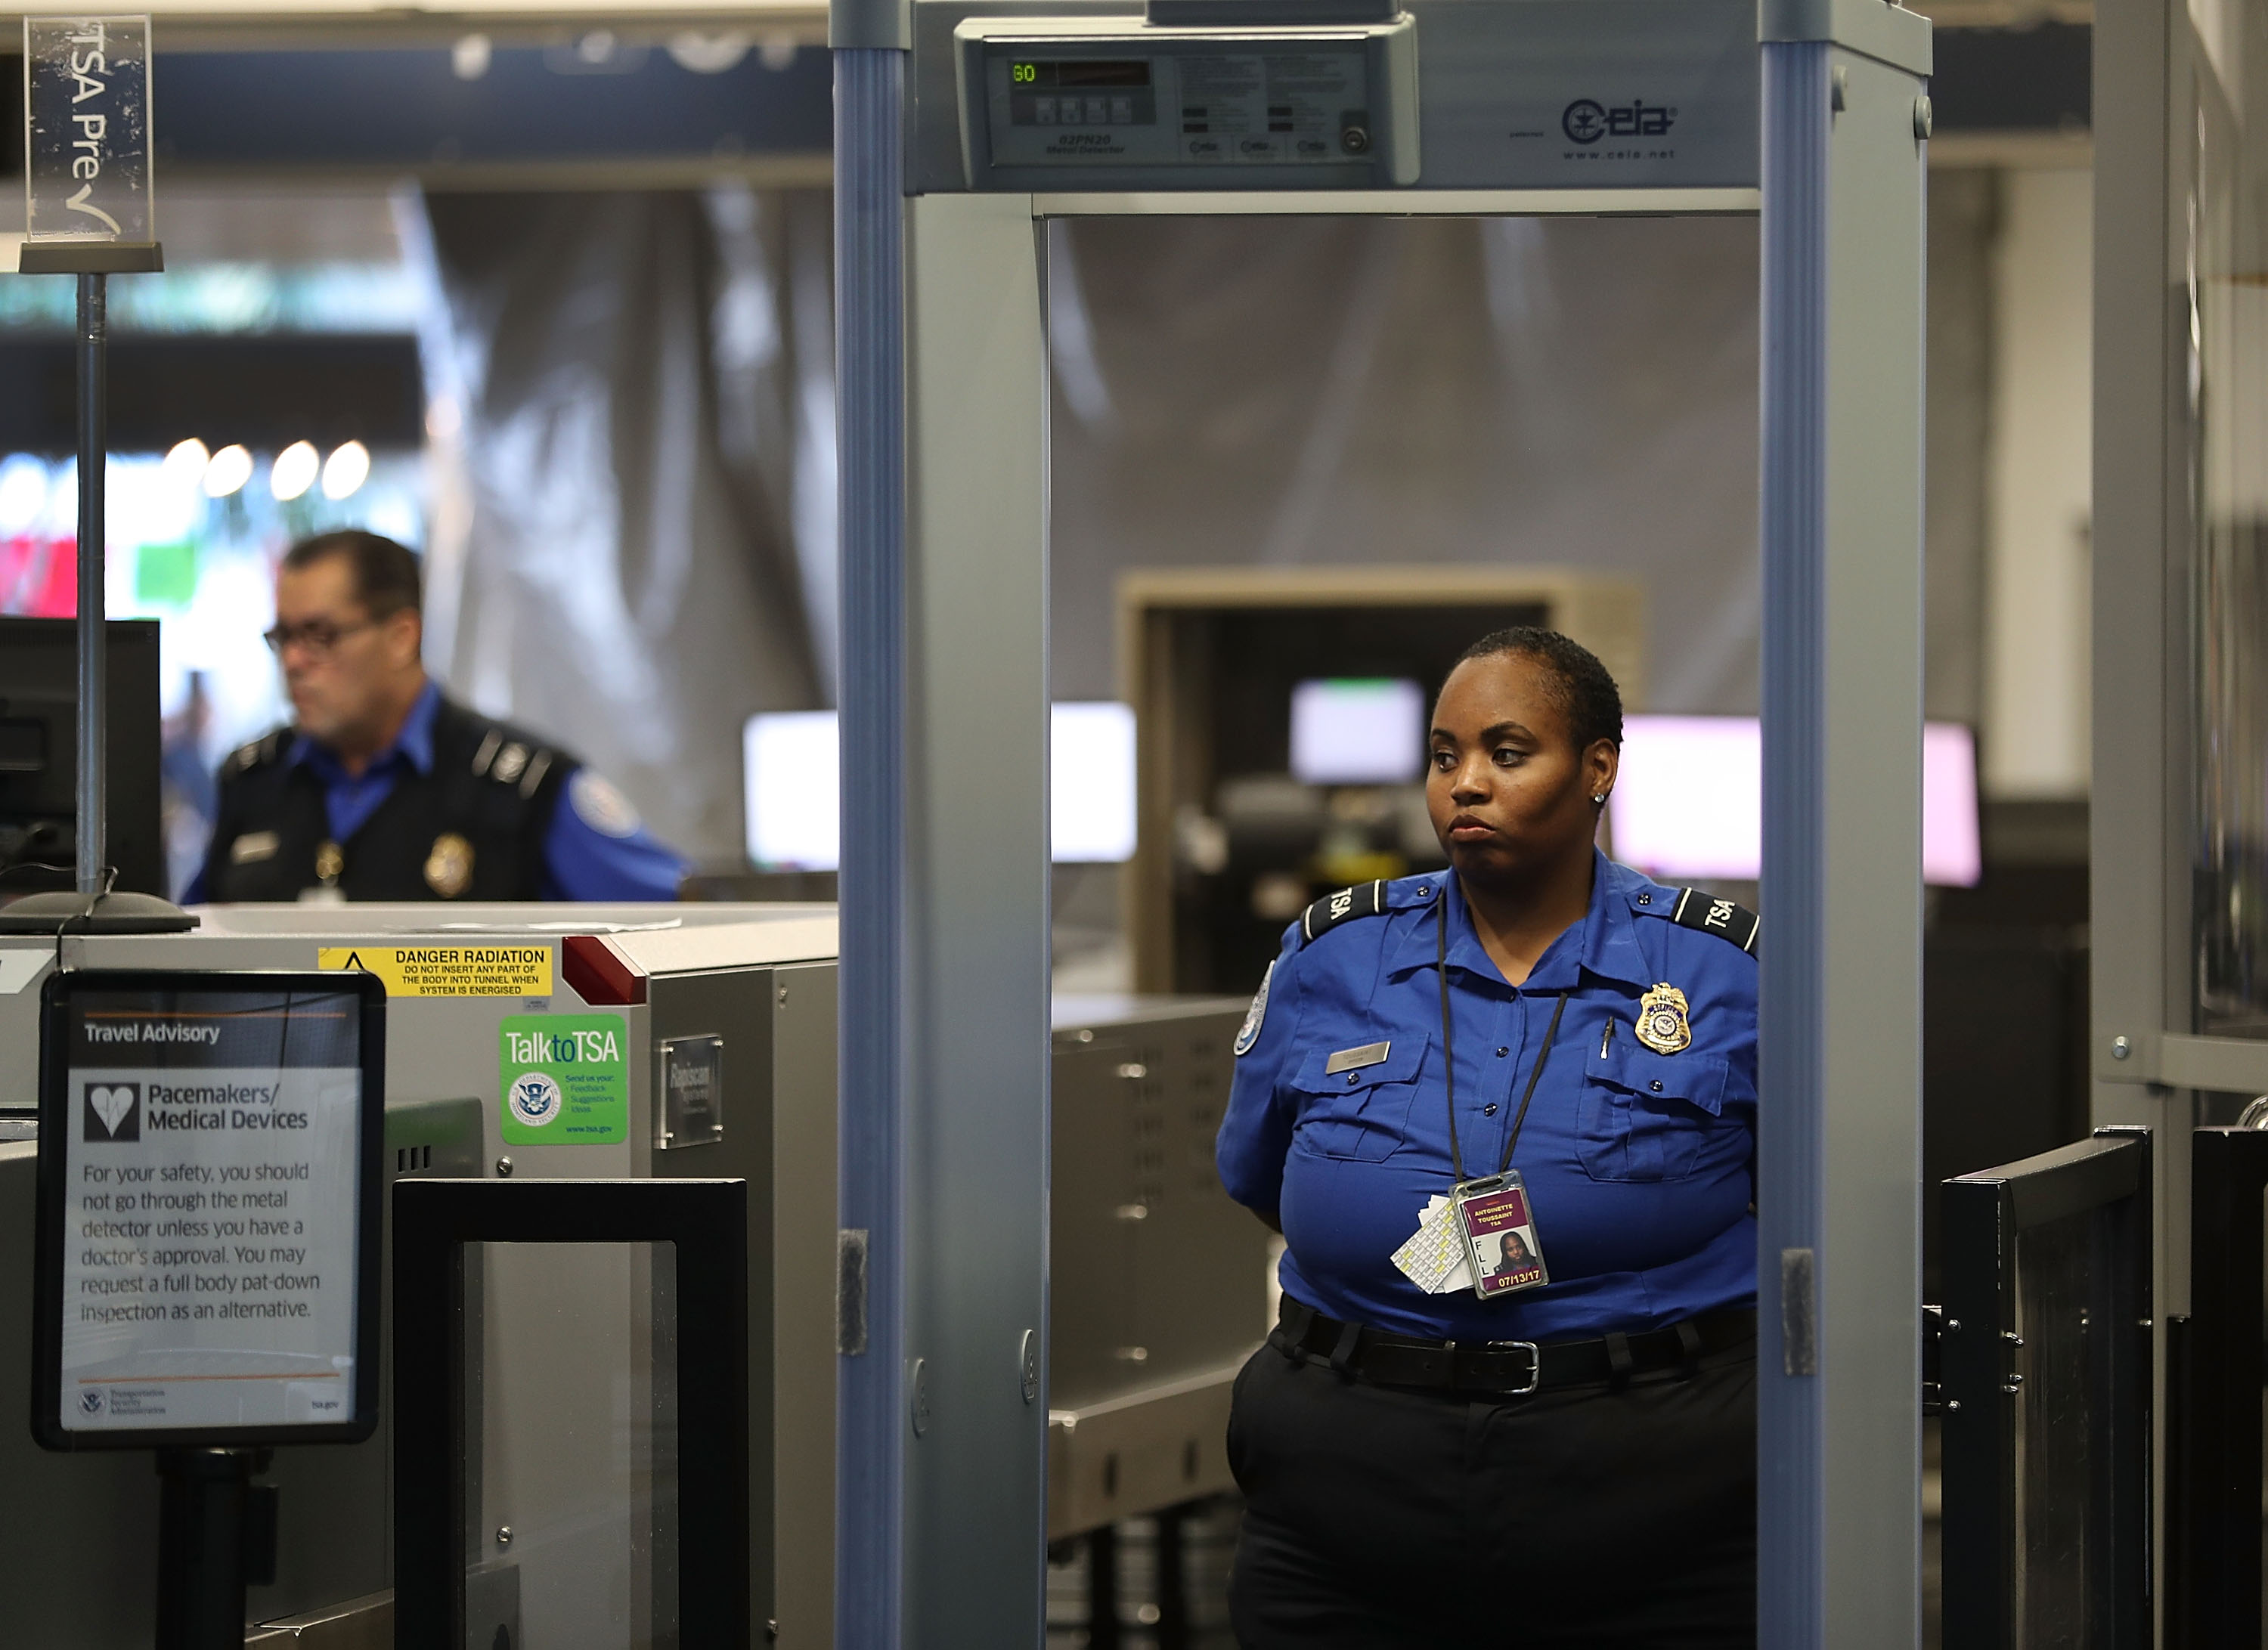 TSA agents were promised a $500 bonus after working unpaid for weeks. They haven't received it.